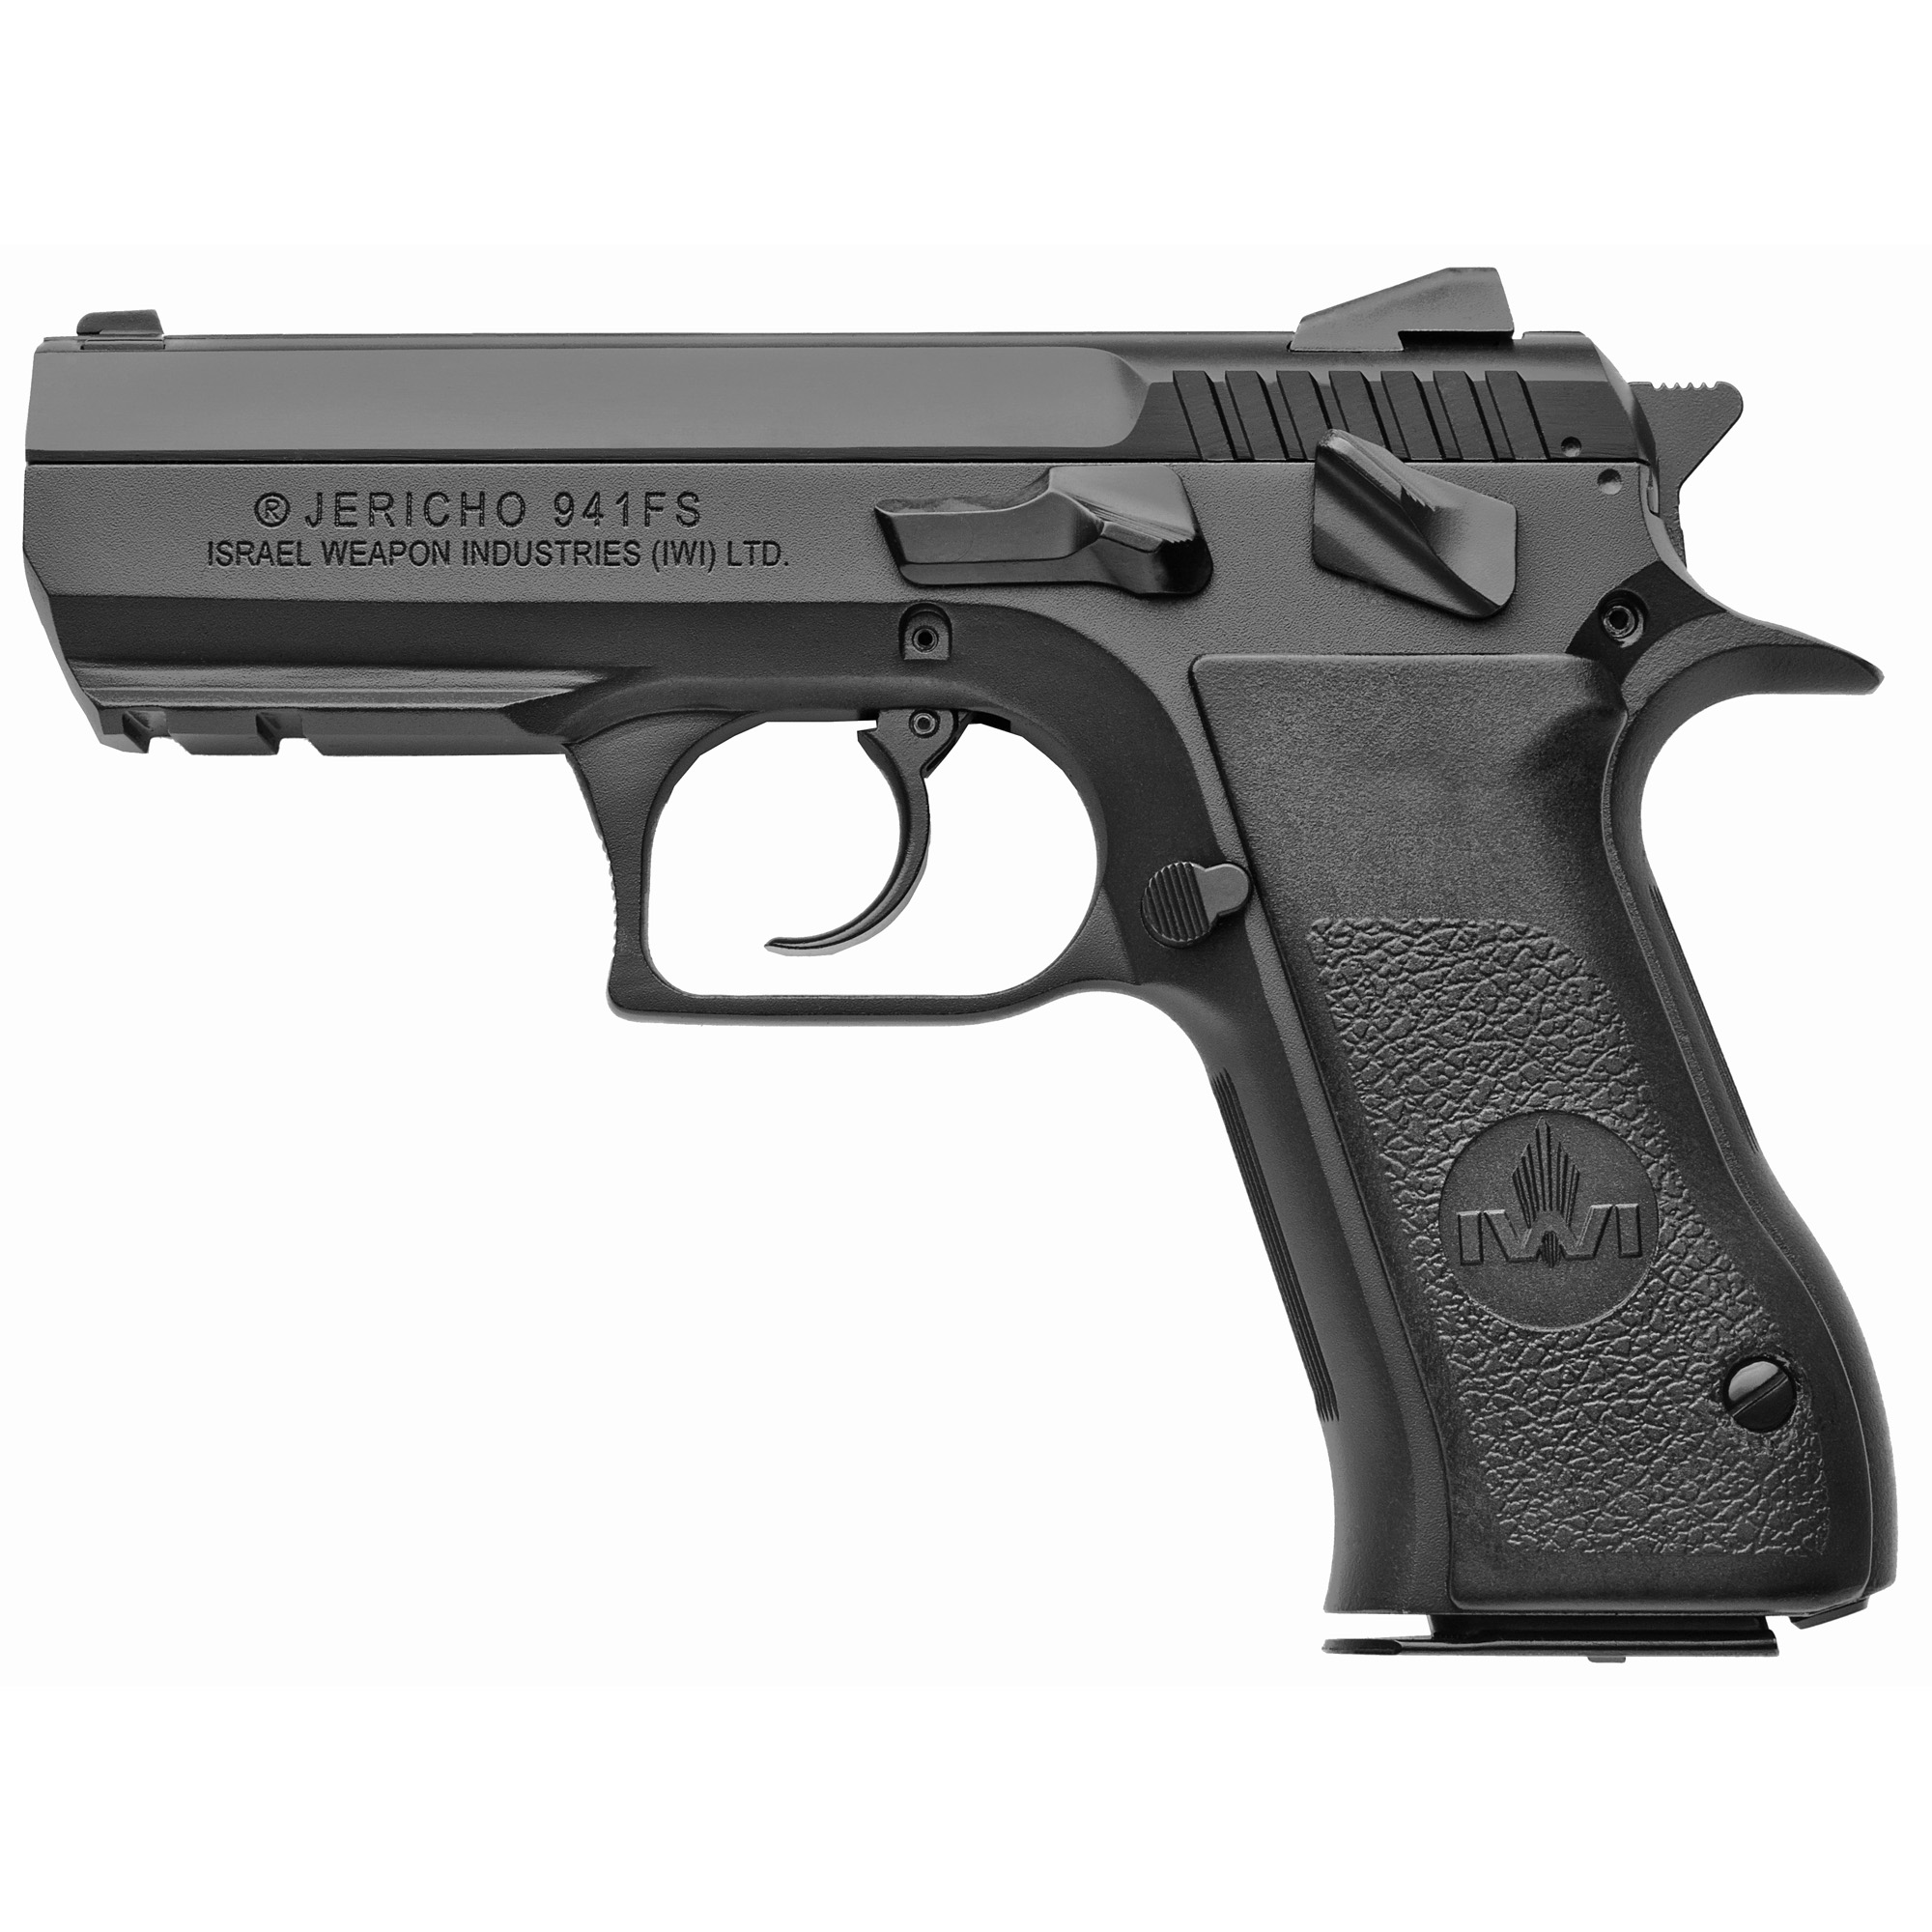 """First introduced in the US in 1990"""" the Jericho 941 has enjoyed wide acceptance by American shooters over the last 25 years. Based on the highly regarded CZ-75 short recoil system"""" Jericho pistols combine proven design and function with IWI's exceptionally high standards for reliable performance"""" accuracy and quality construction."""